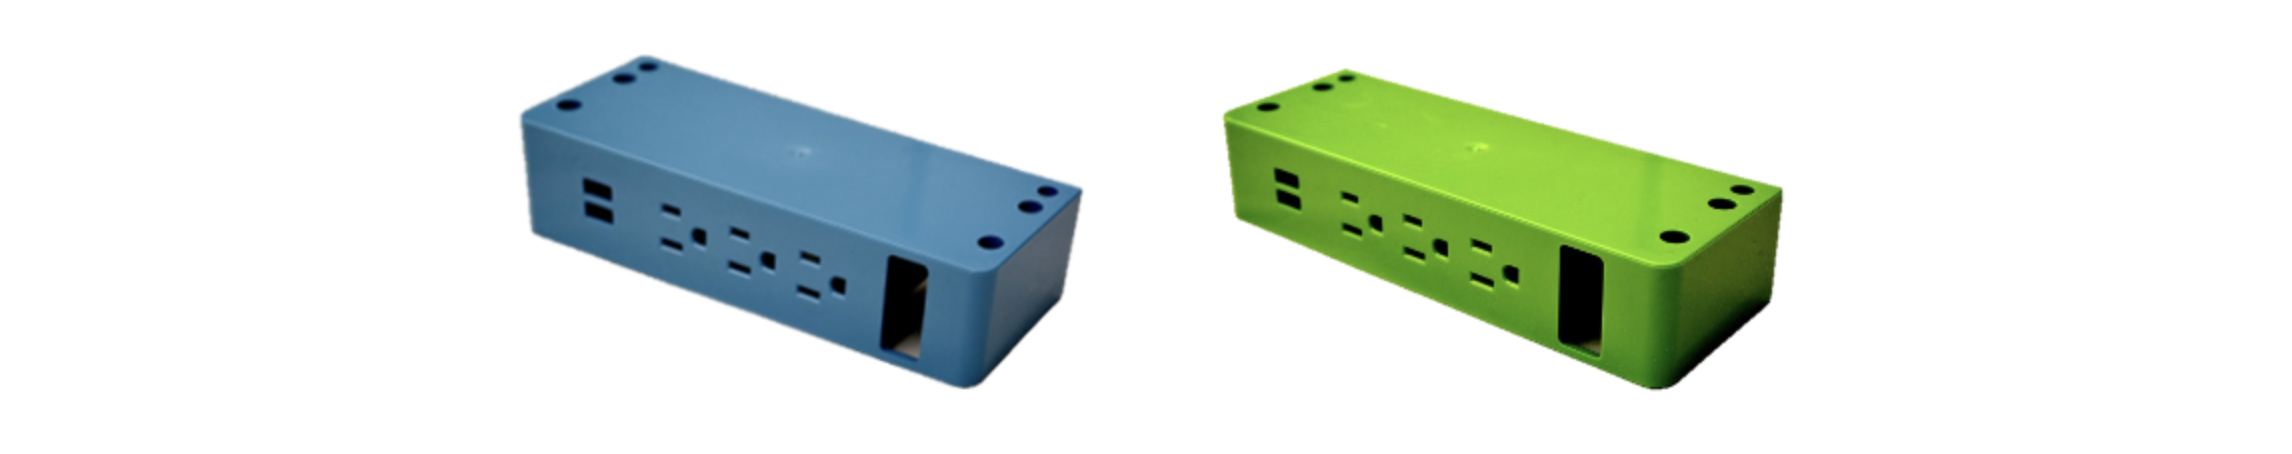 Blue and green A/C power strips